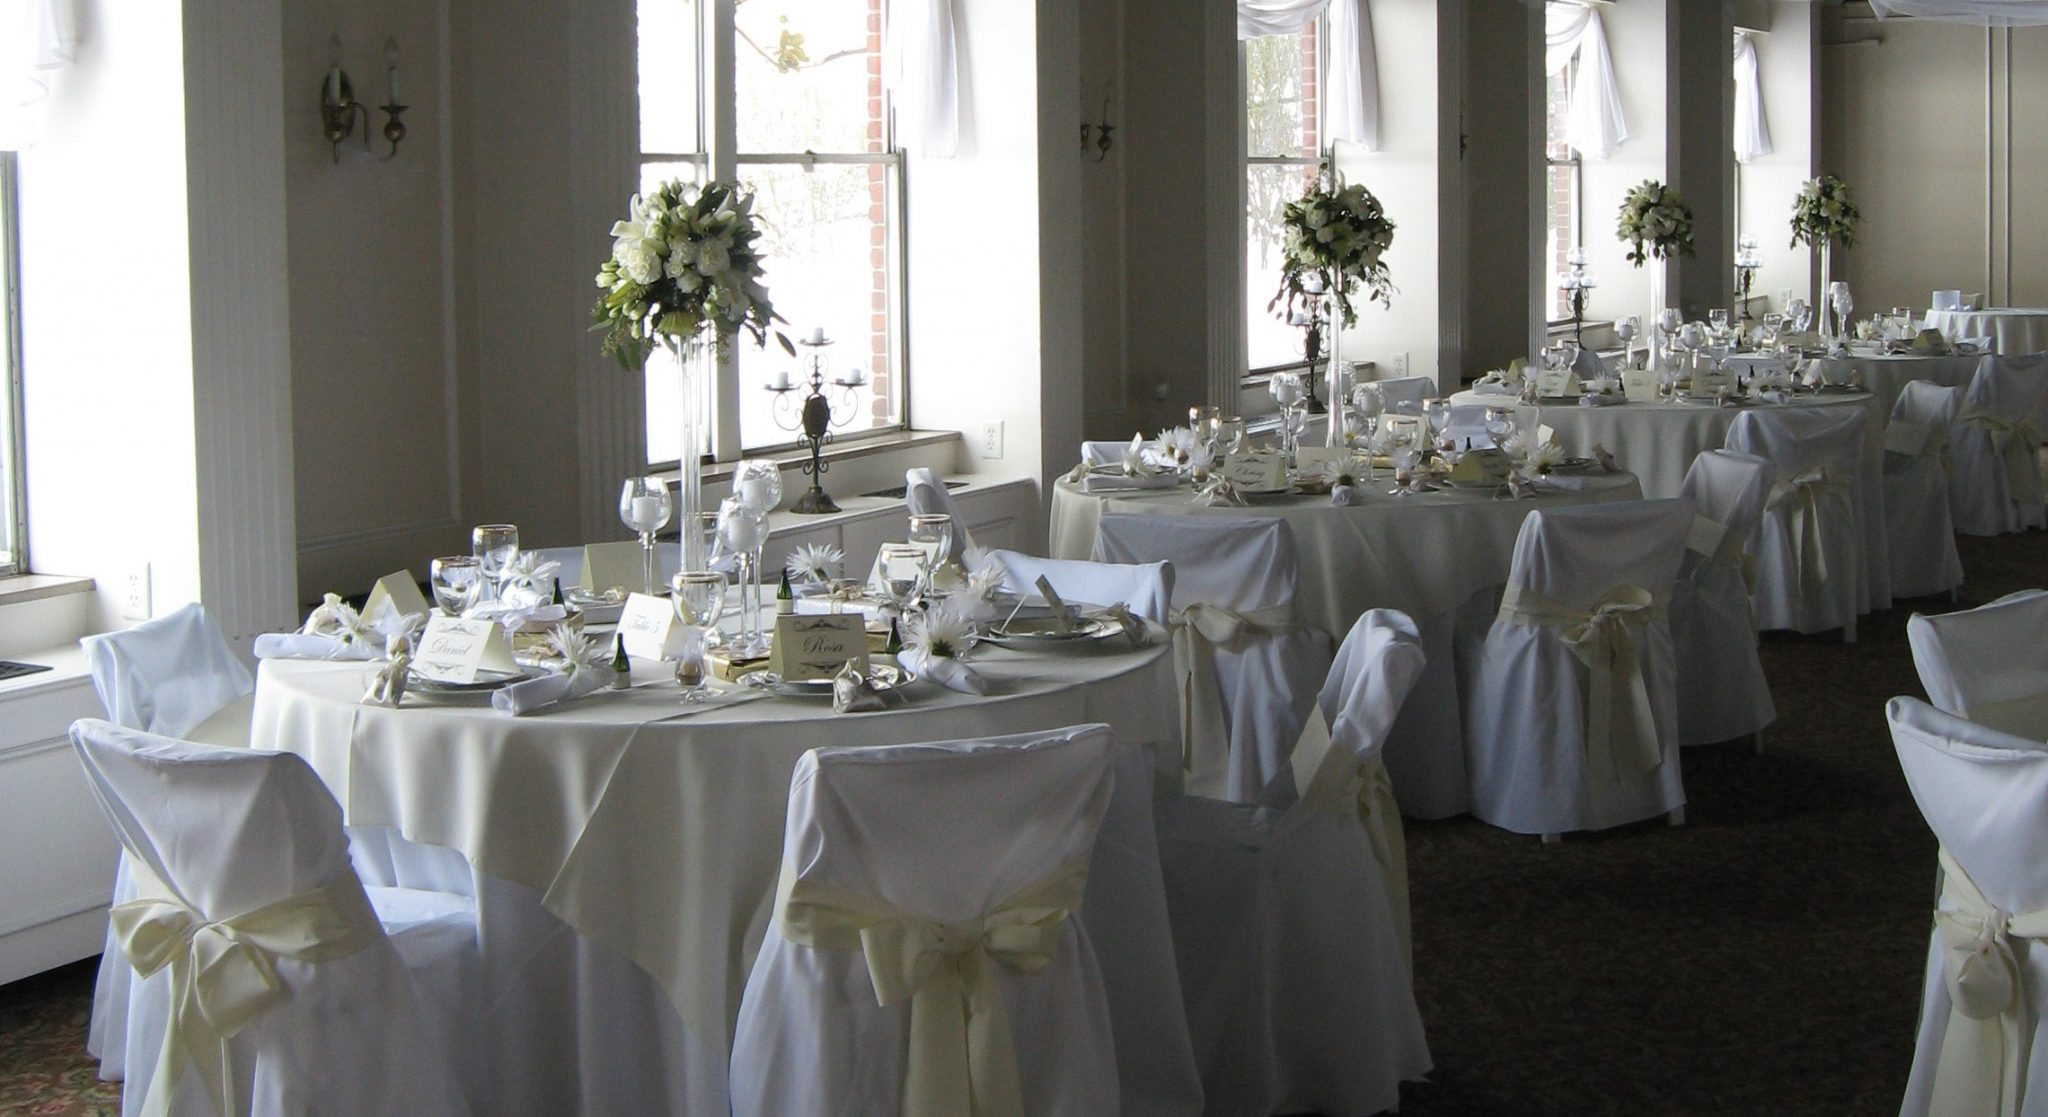 Wedding Venues Louisville Ky.Louisville Wedding Venue Reception Ceremony Space